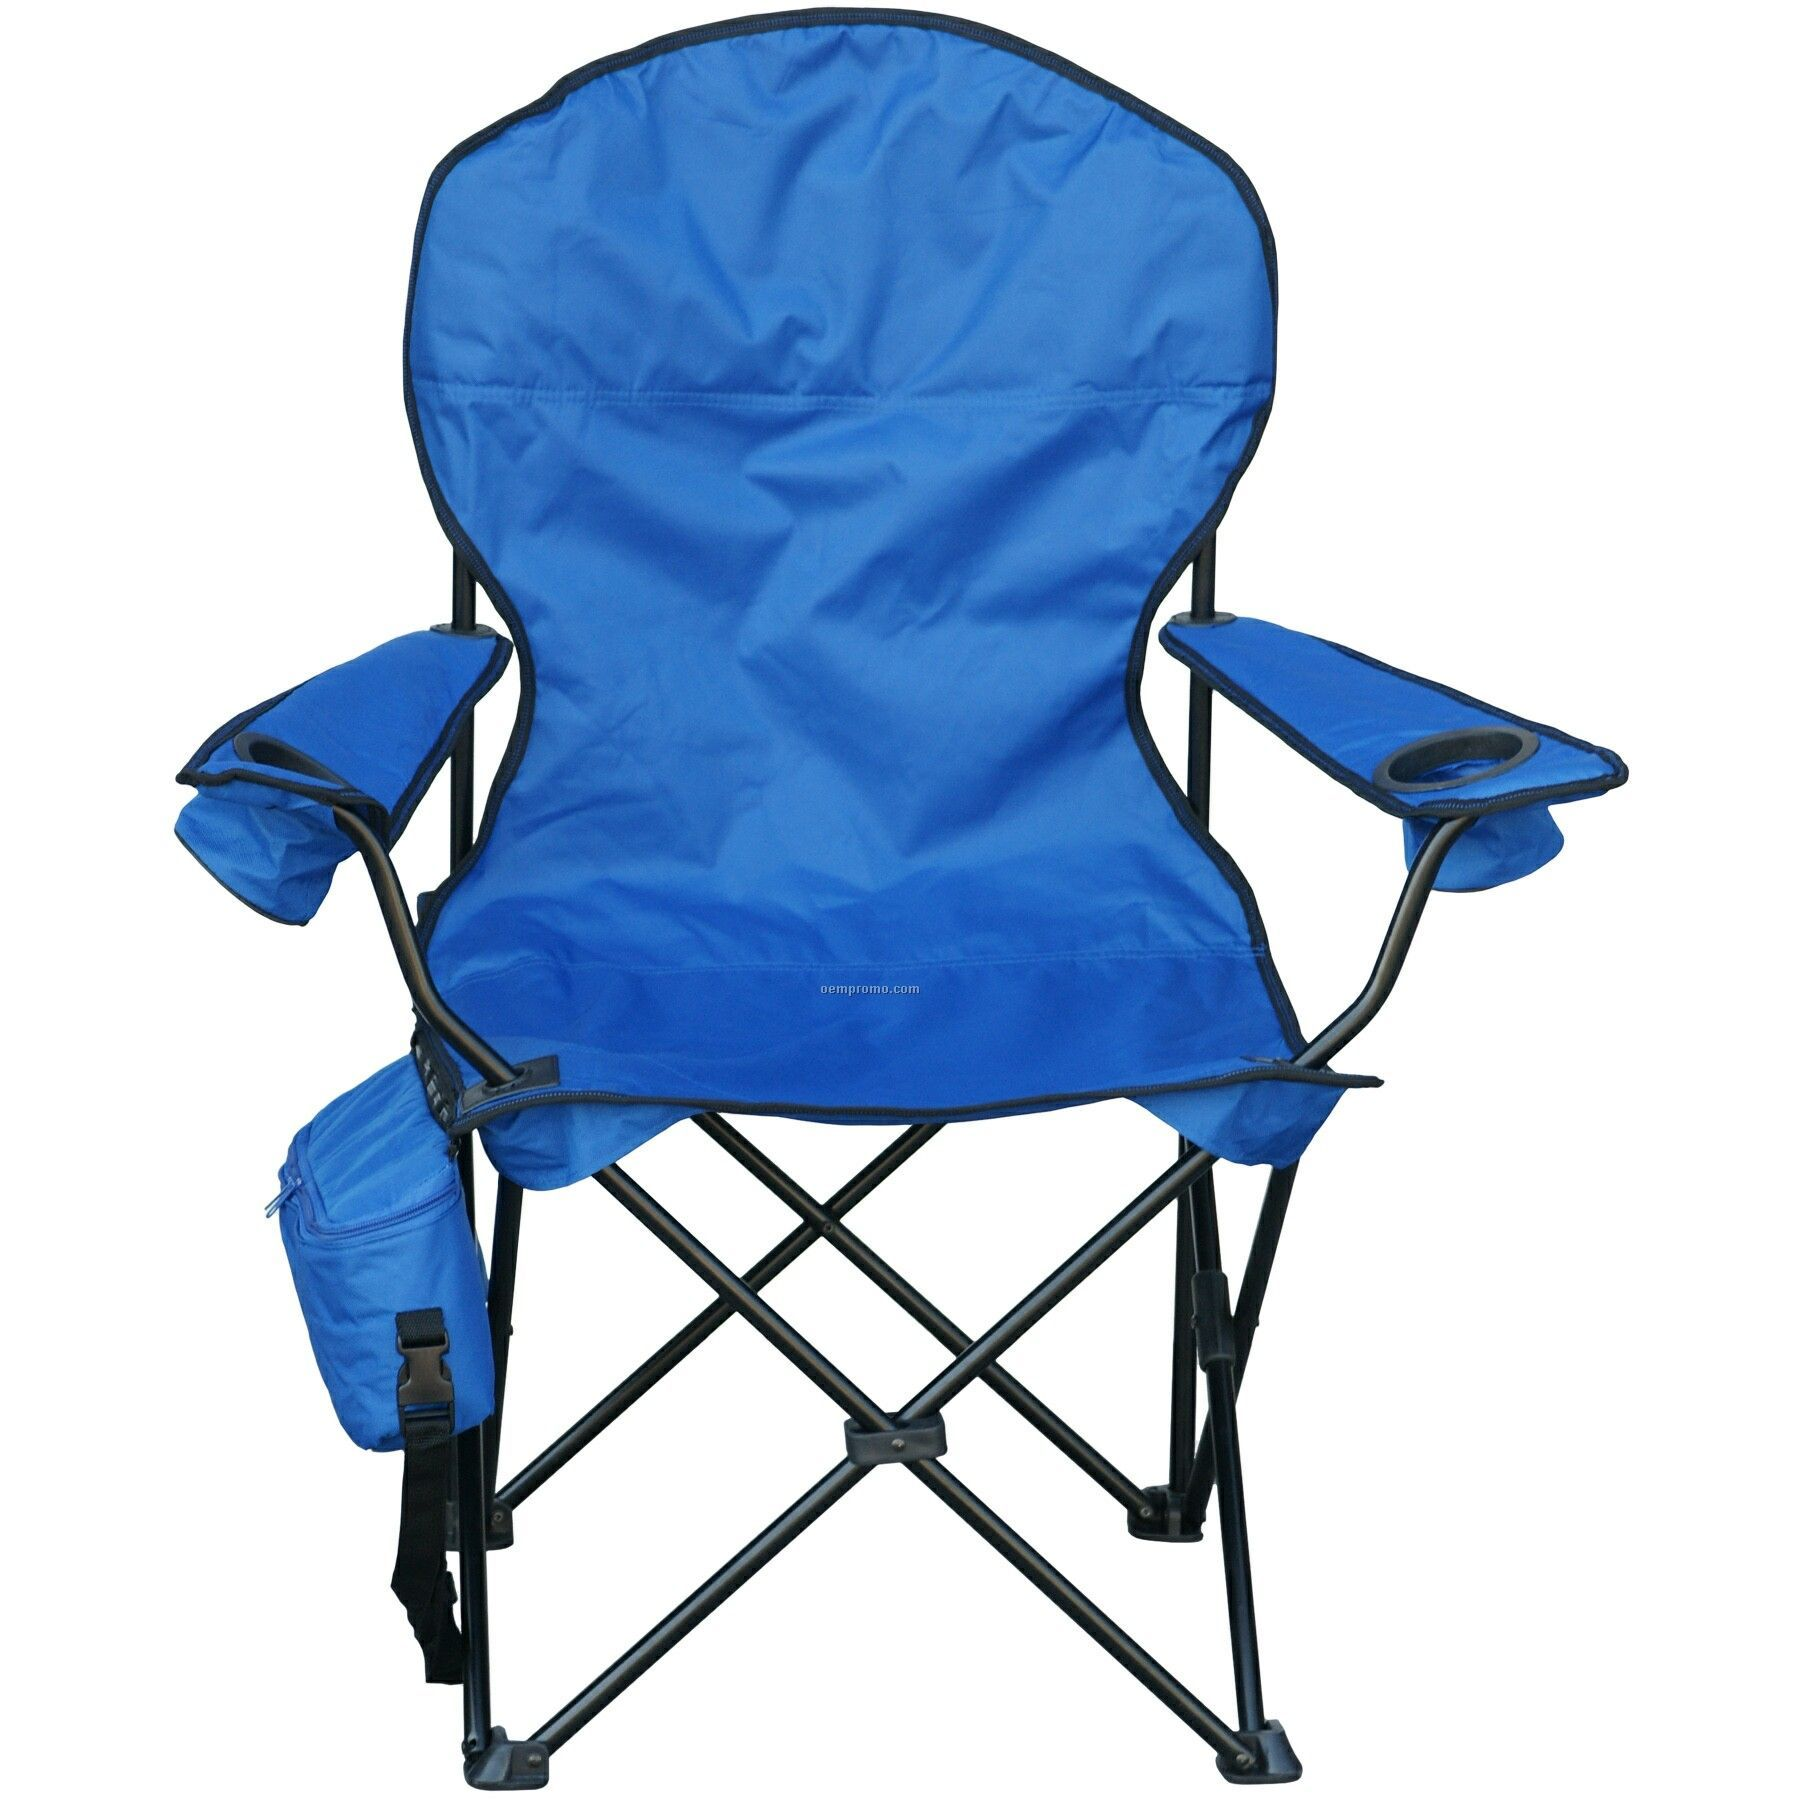 folding chairs in bags medical office waiting room direct import round back chair with cooler and